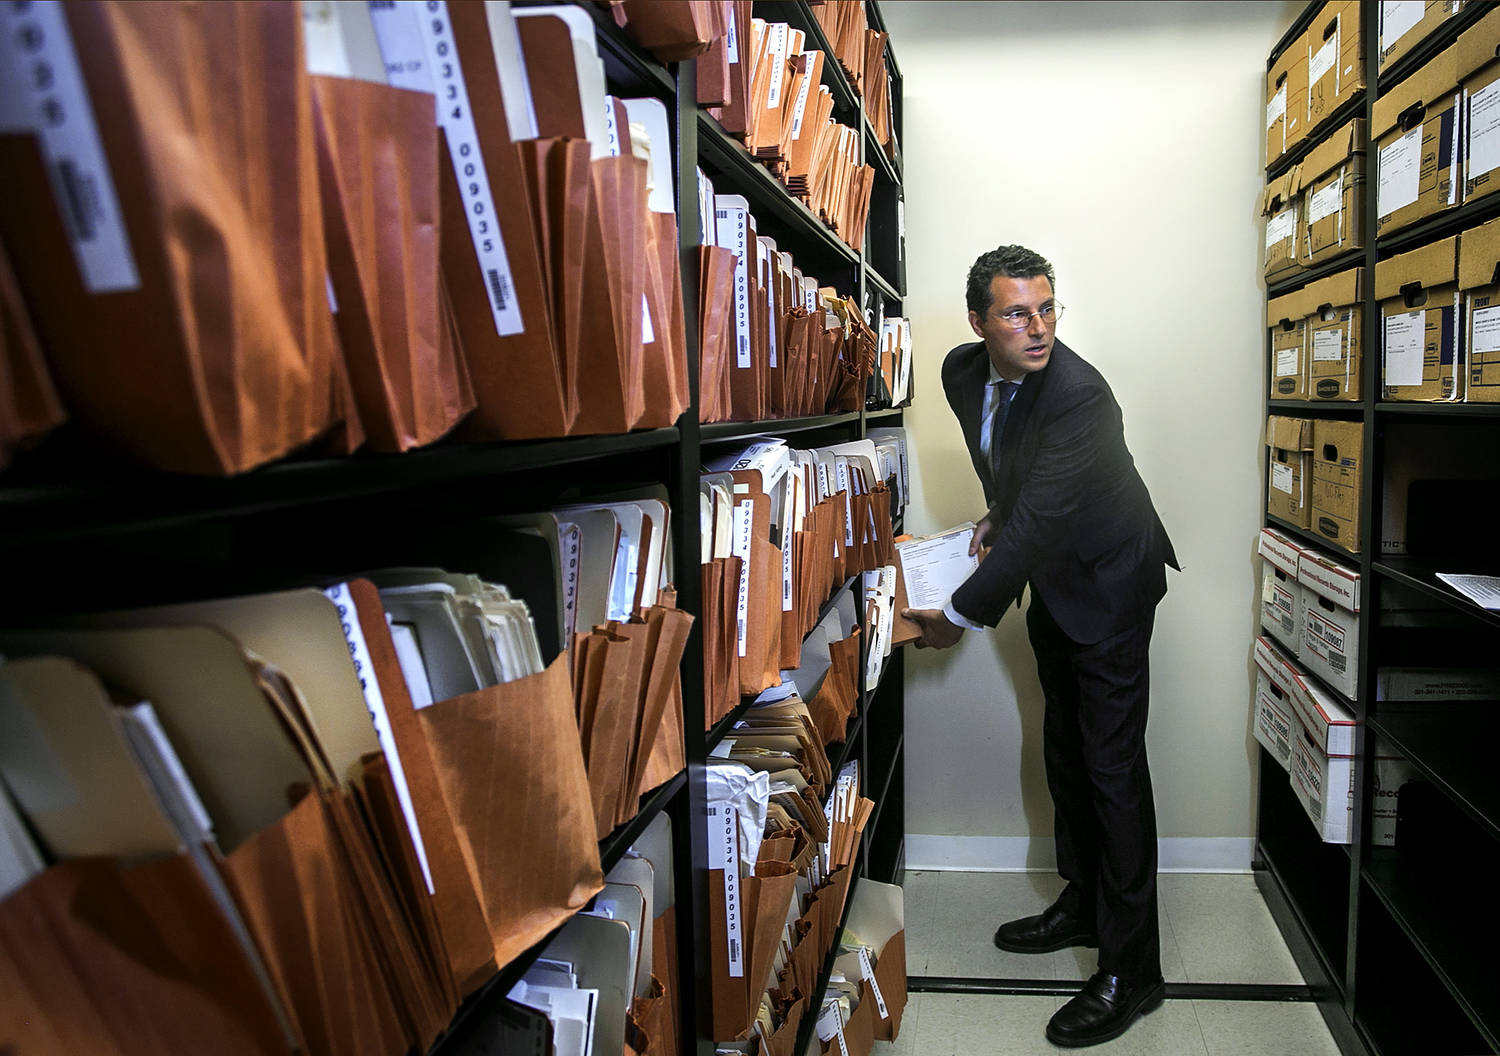 Between shelves of file folders and document storage boxes is a man in a dark suit, pulling a group of files from the shelf.